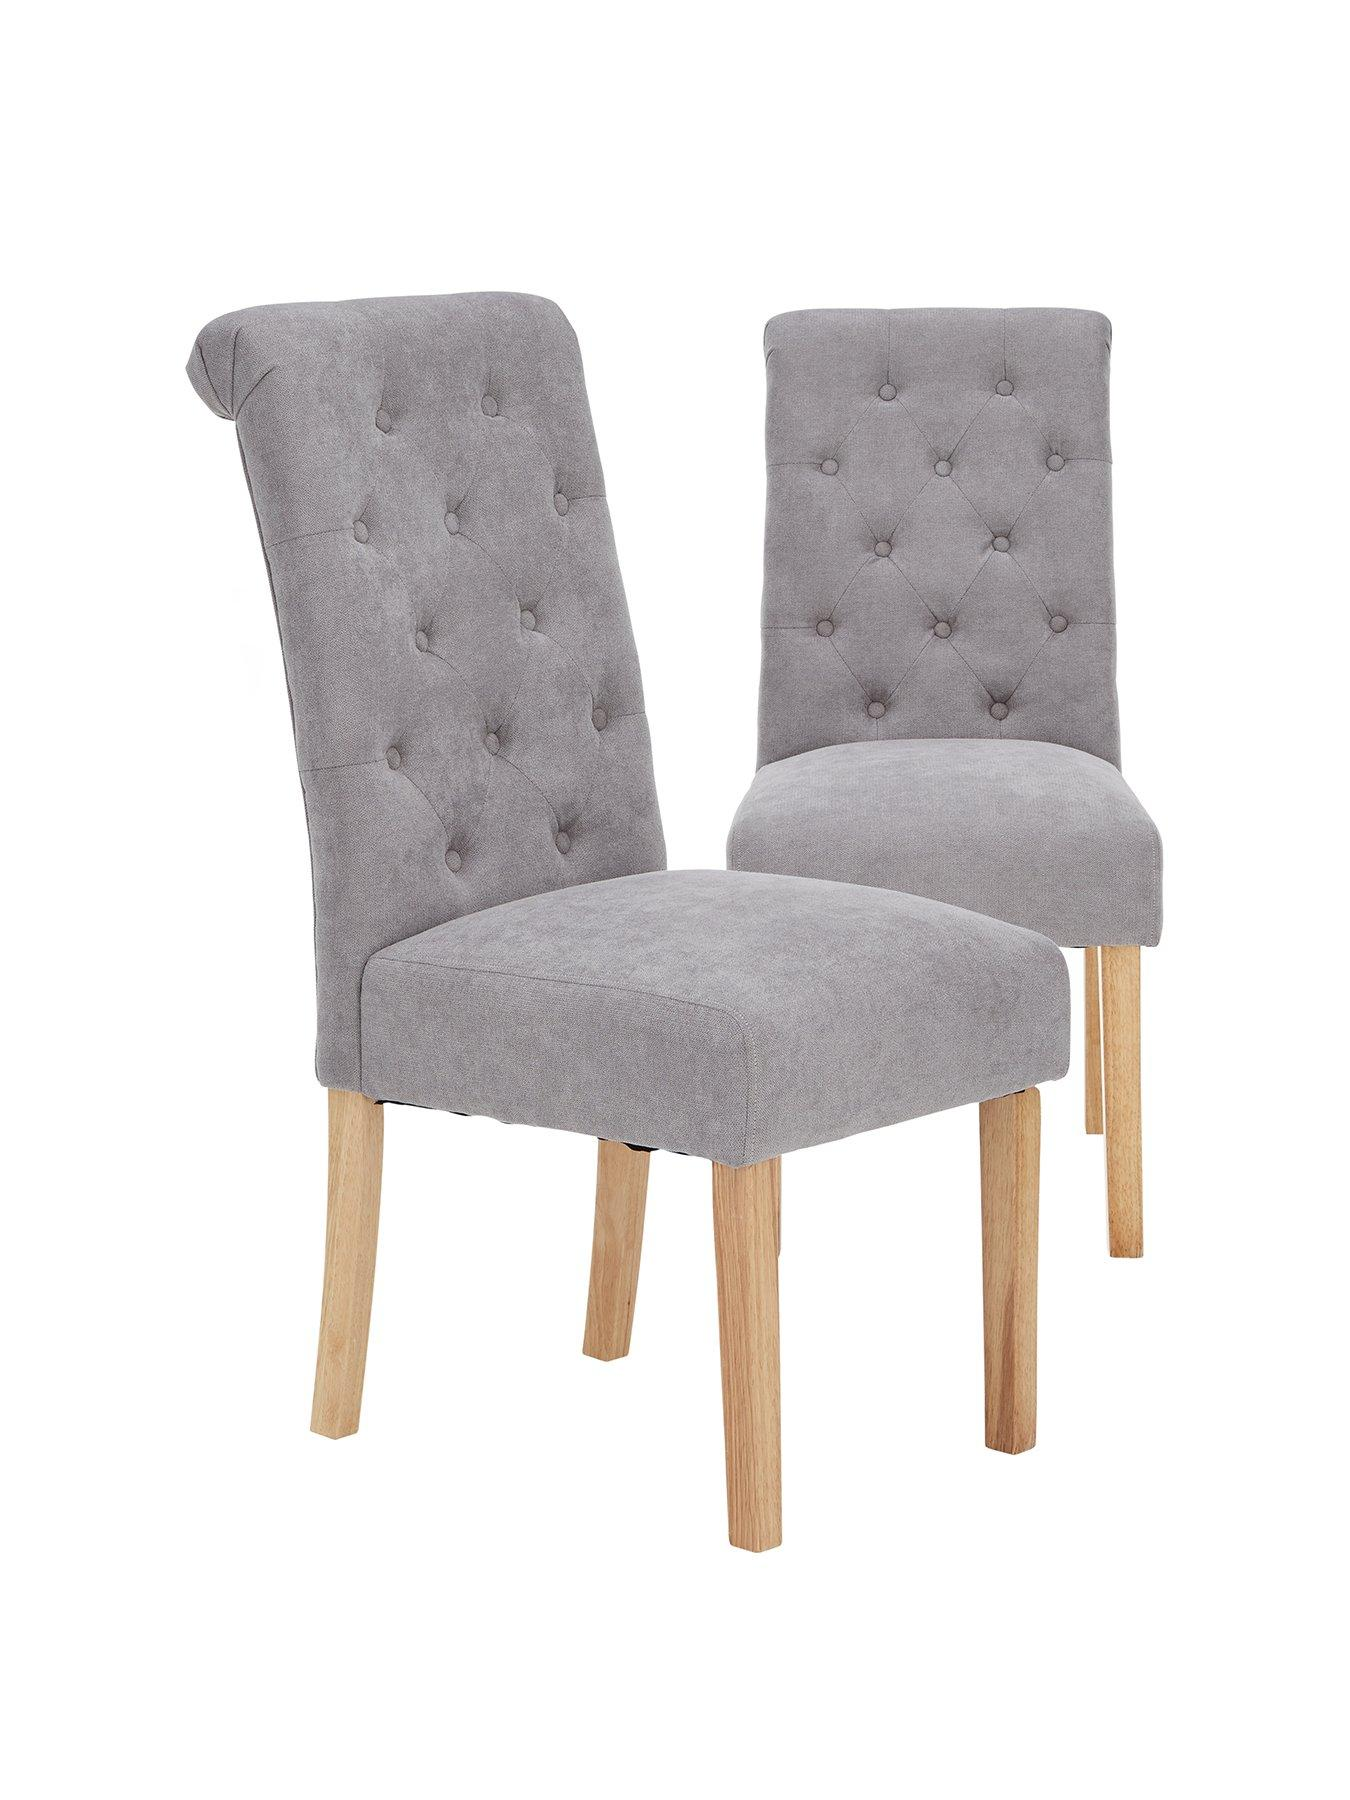 Home Furniture Diy 1 X Sand Linen Fabric Dining Chair Covers For Scroll Top High Back Leather Stroudwoods Org Uk